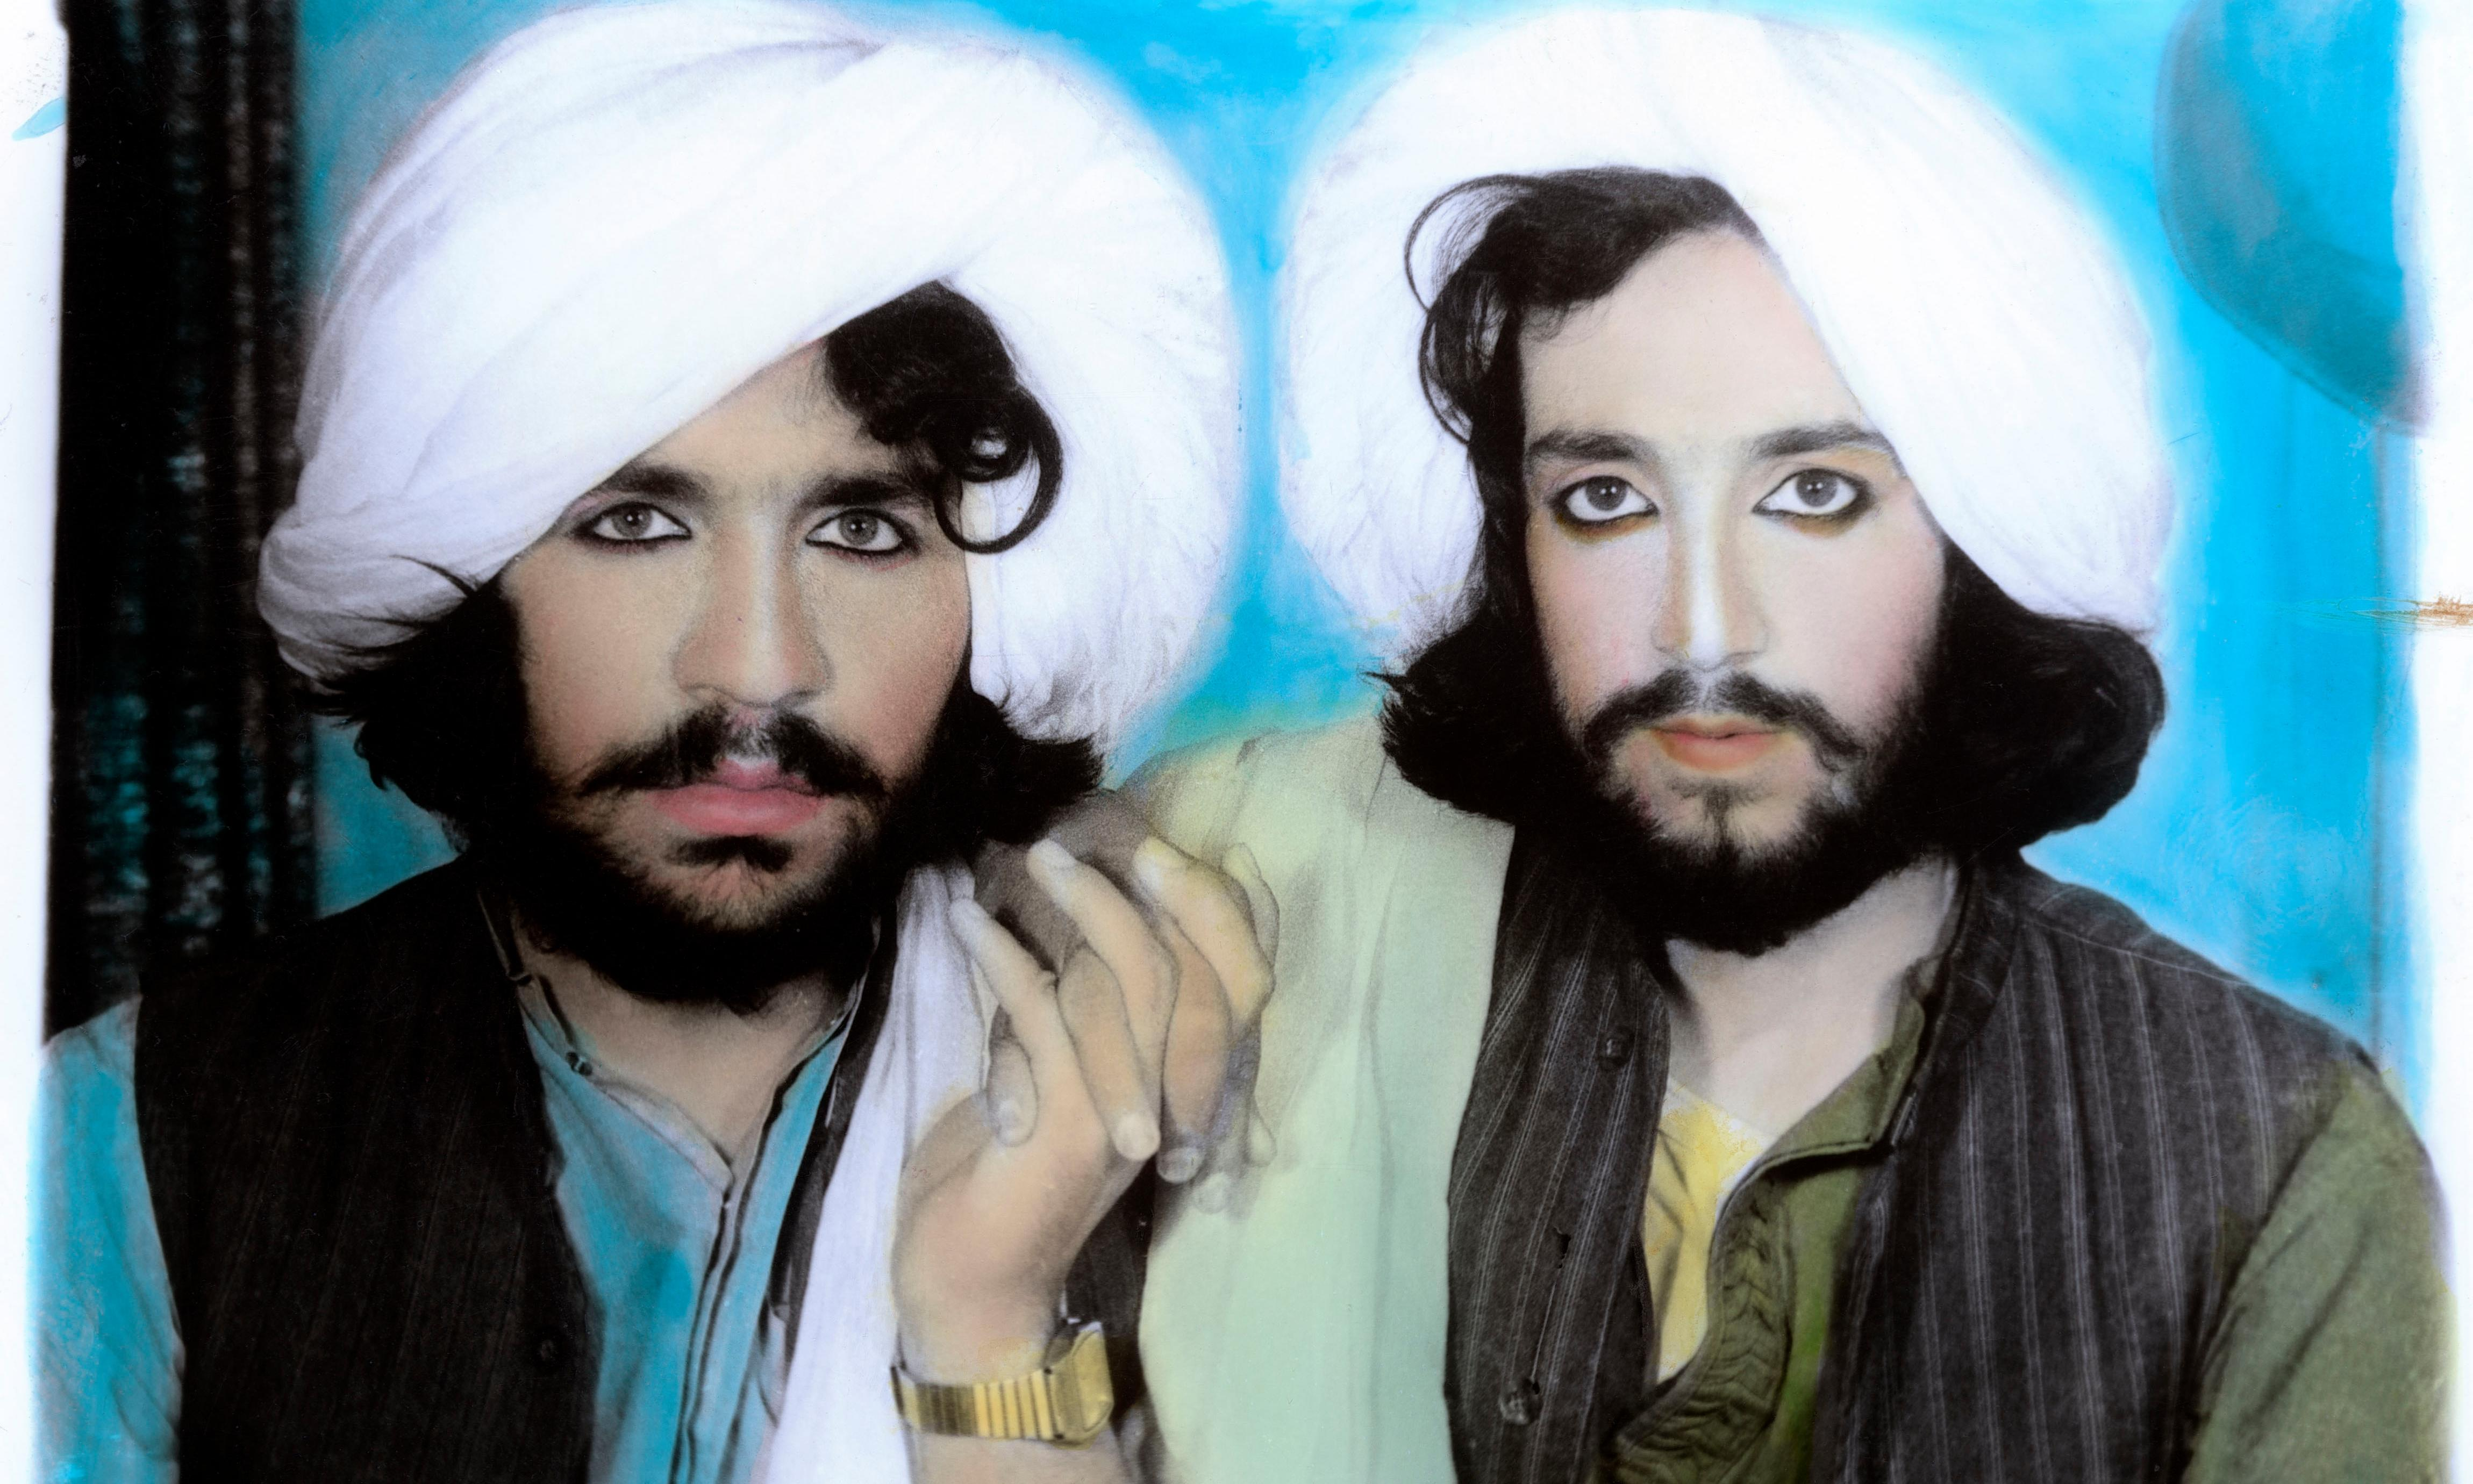 Taliban fighters in makeup: Barbican to show rare pictures